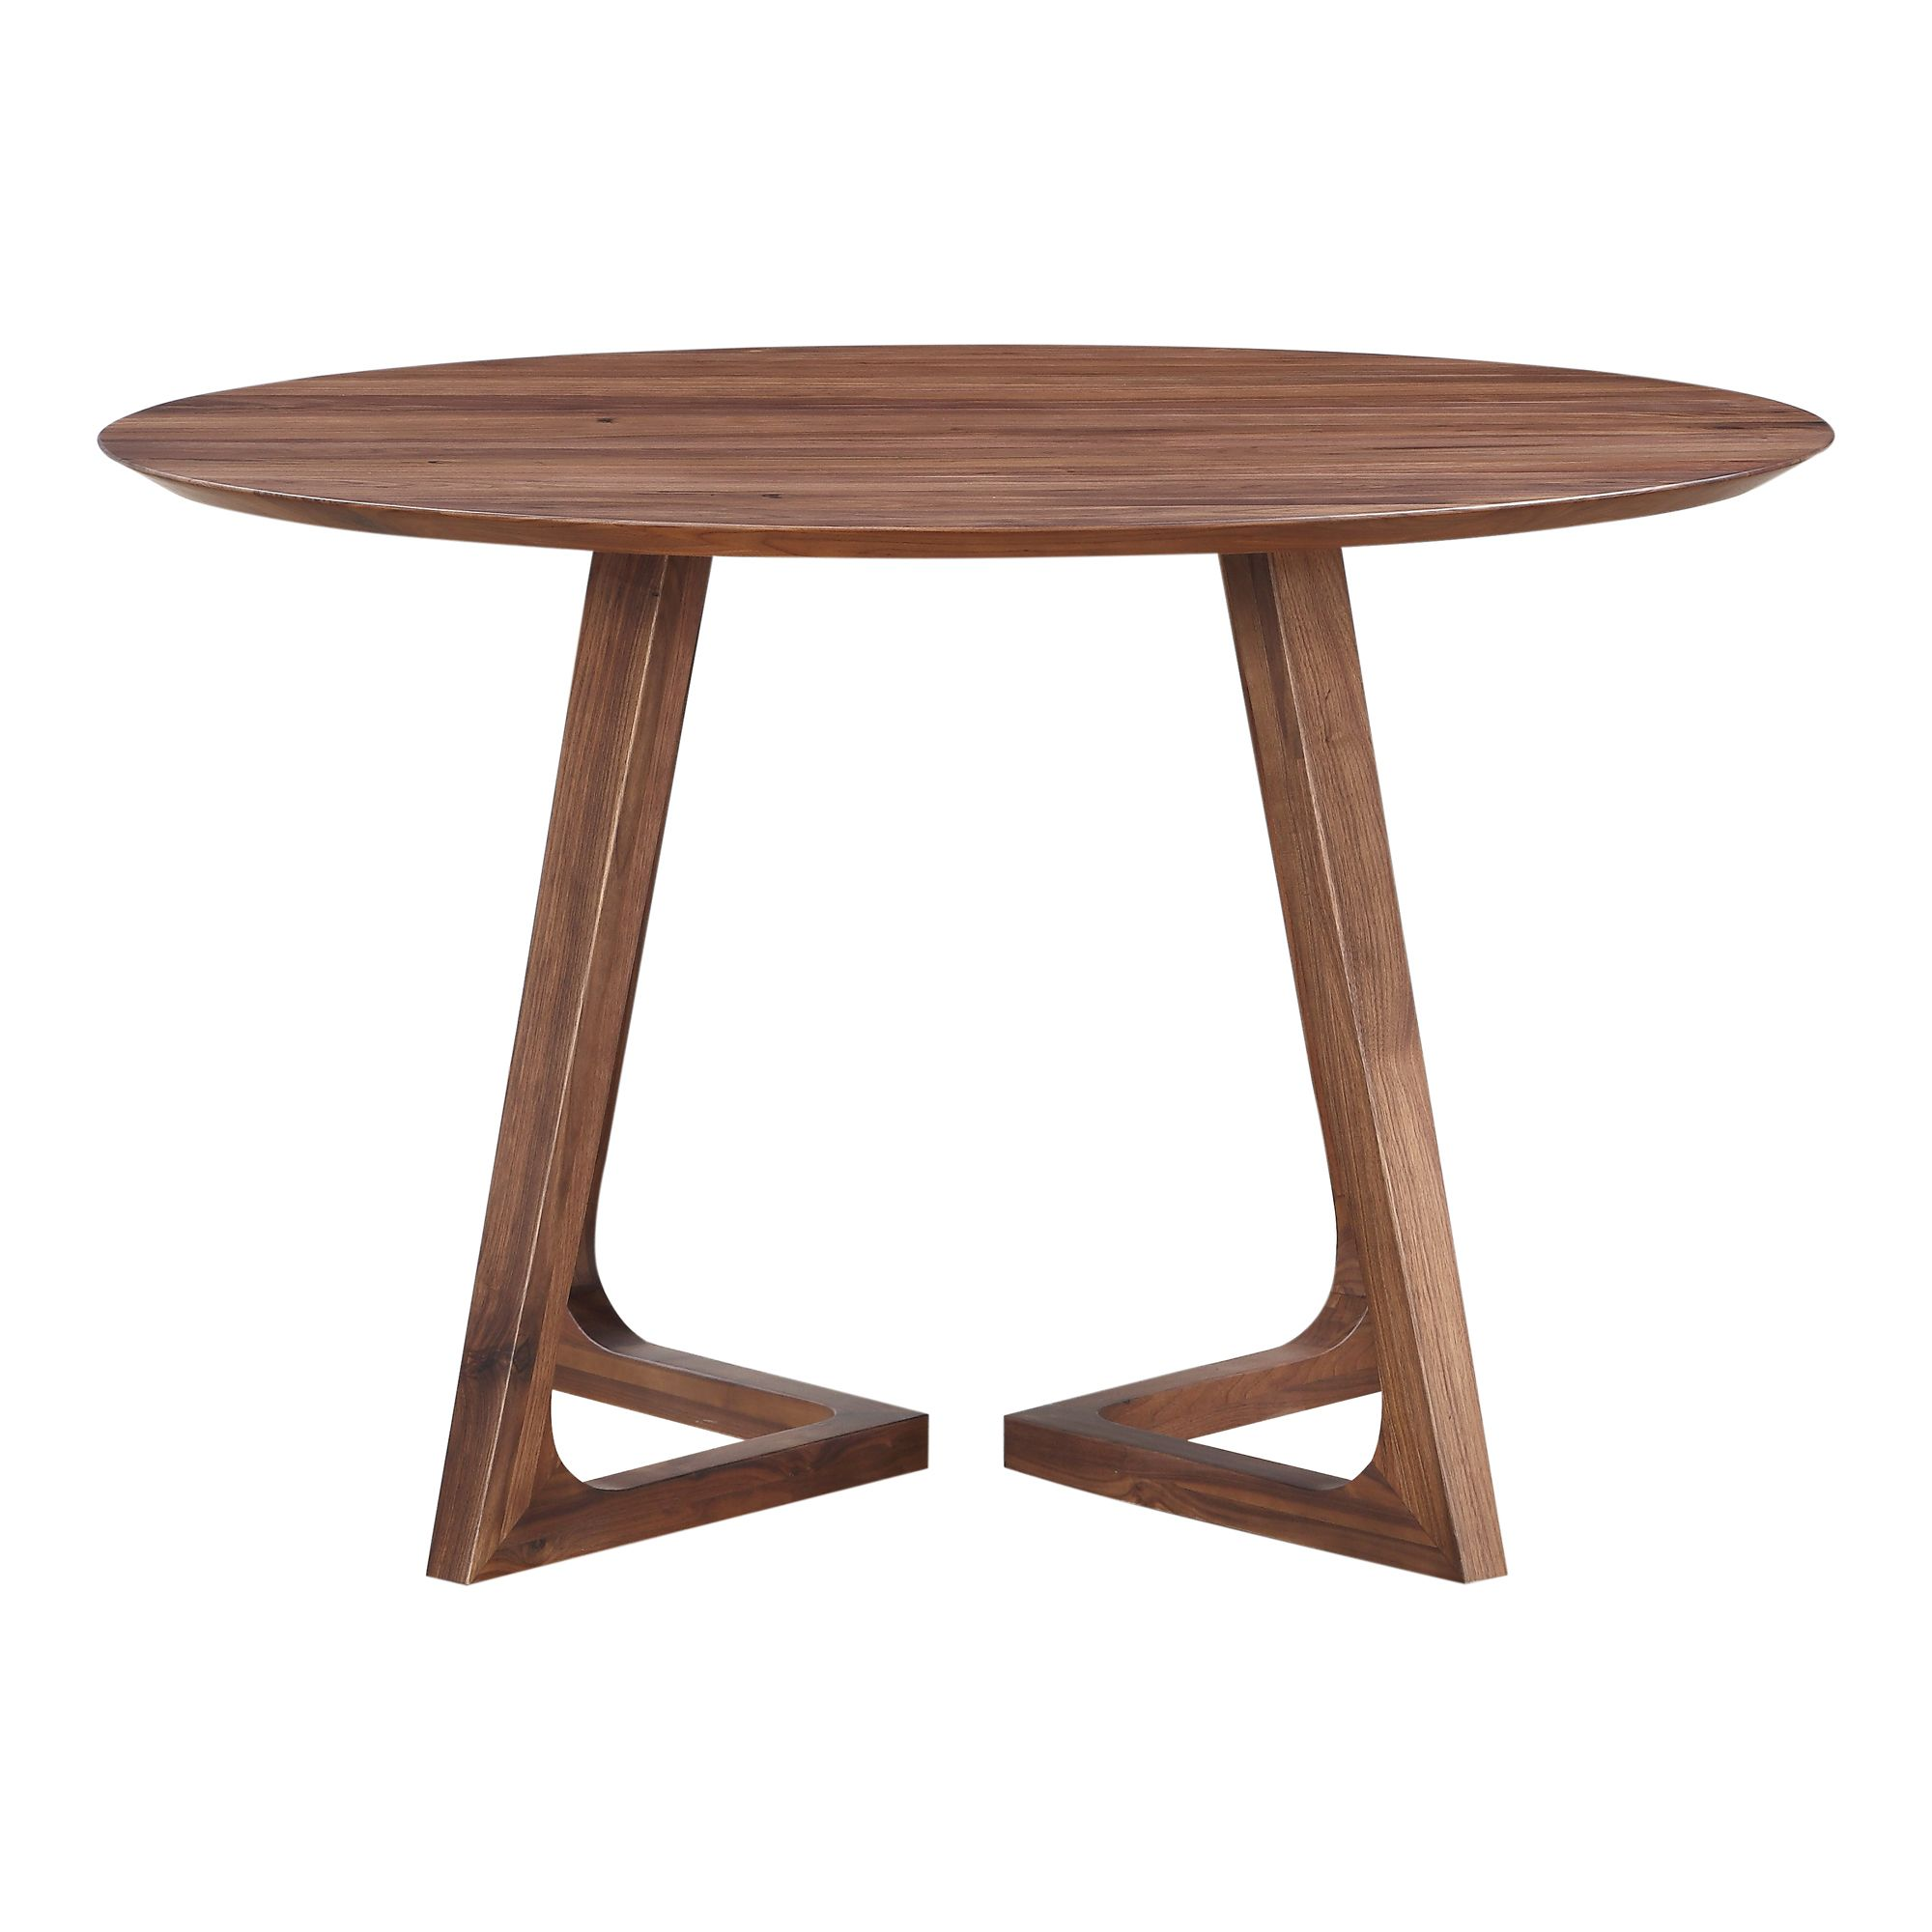 Godenza Dining Table Round Walnut In 2020 Round Dining Table